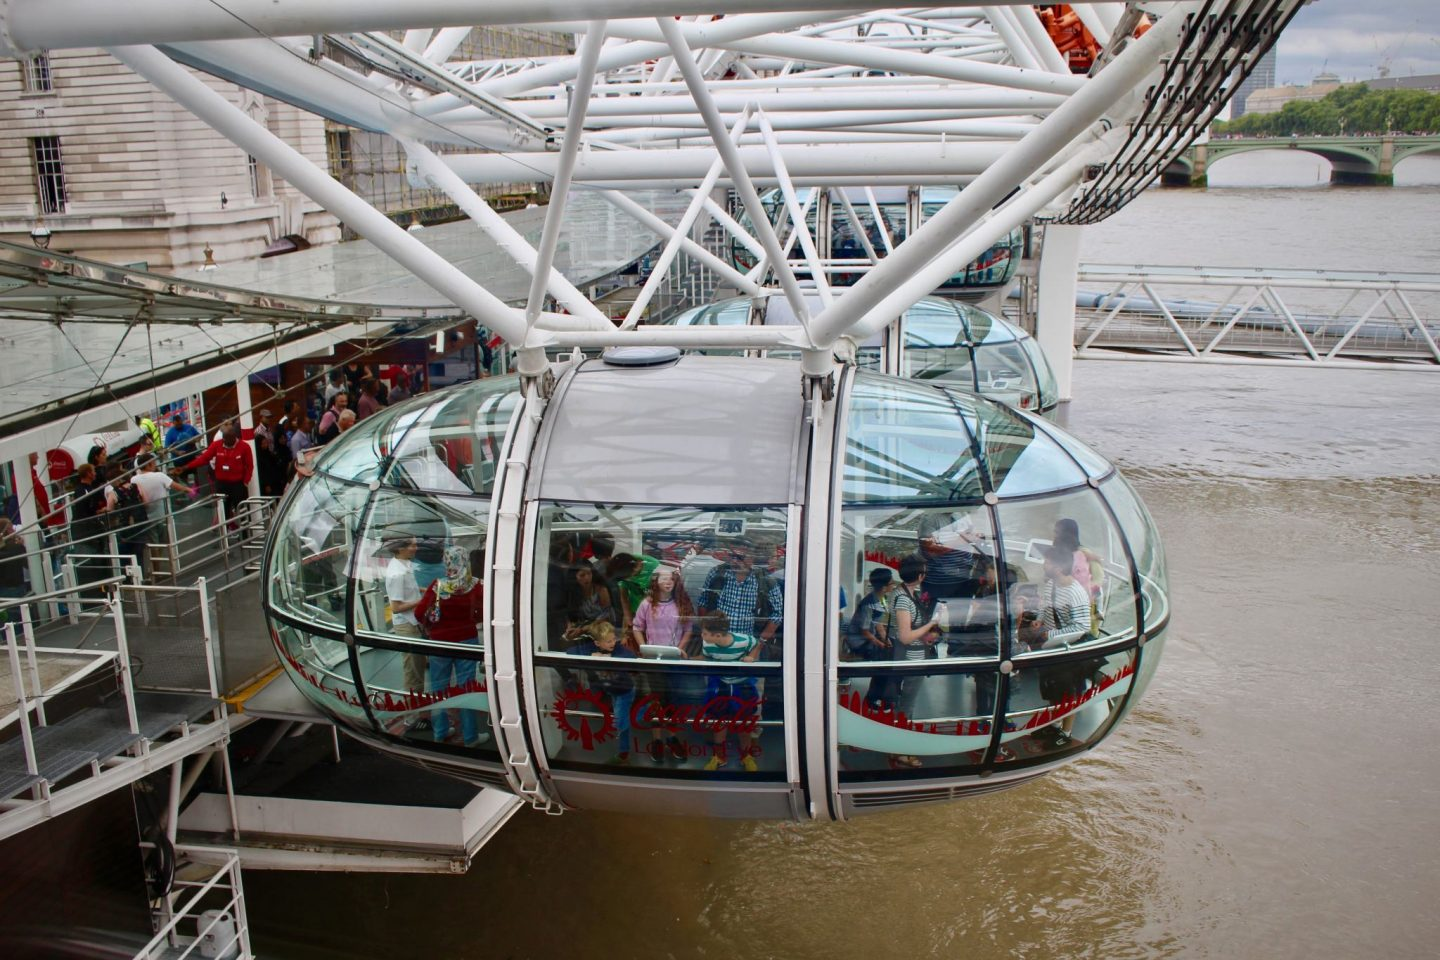 London Eye Pods ... 24 Hours Along the Thames River London ... The Spectacular Adventurer